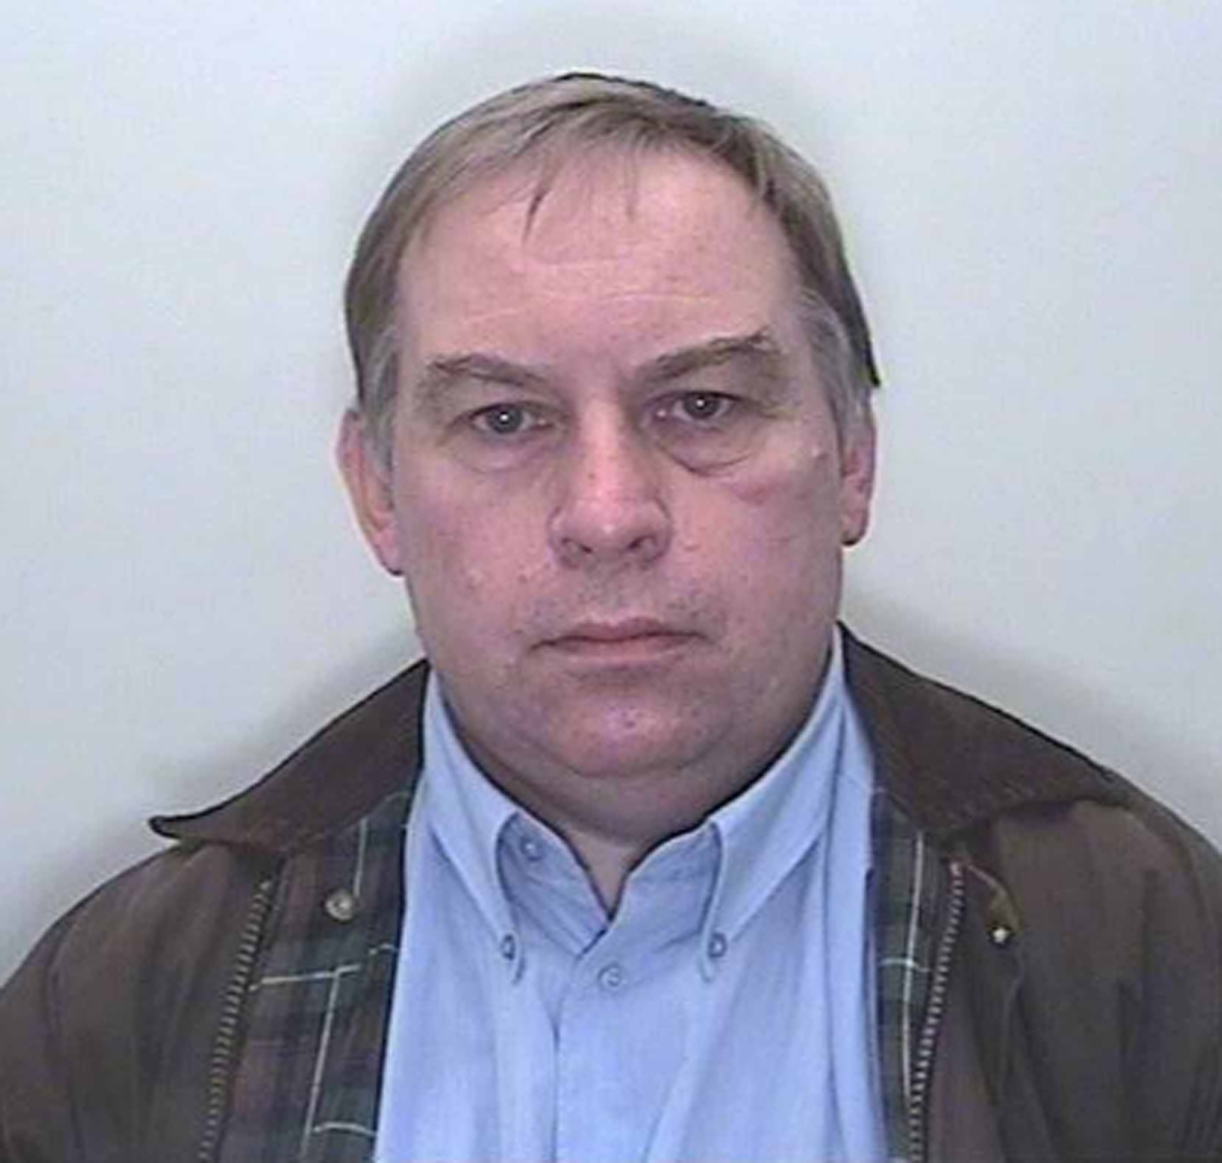 Lee Groves, jailed for 12 months